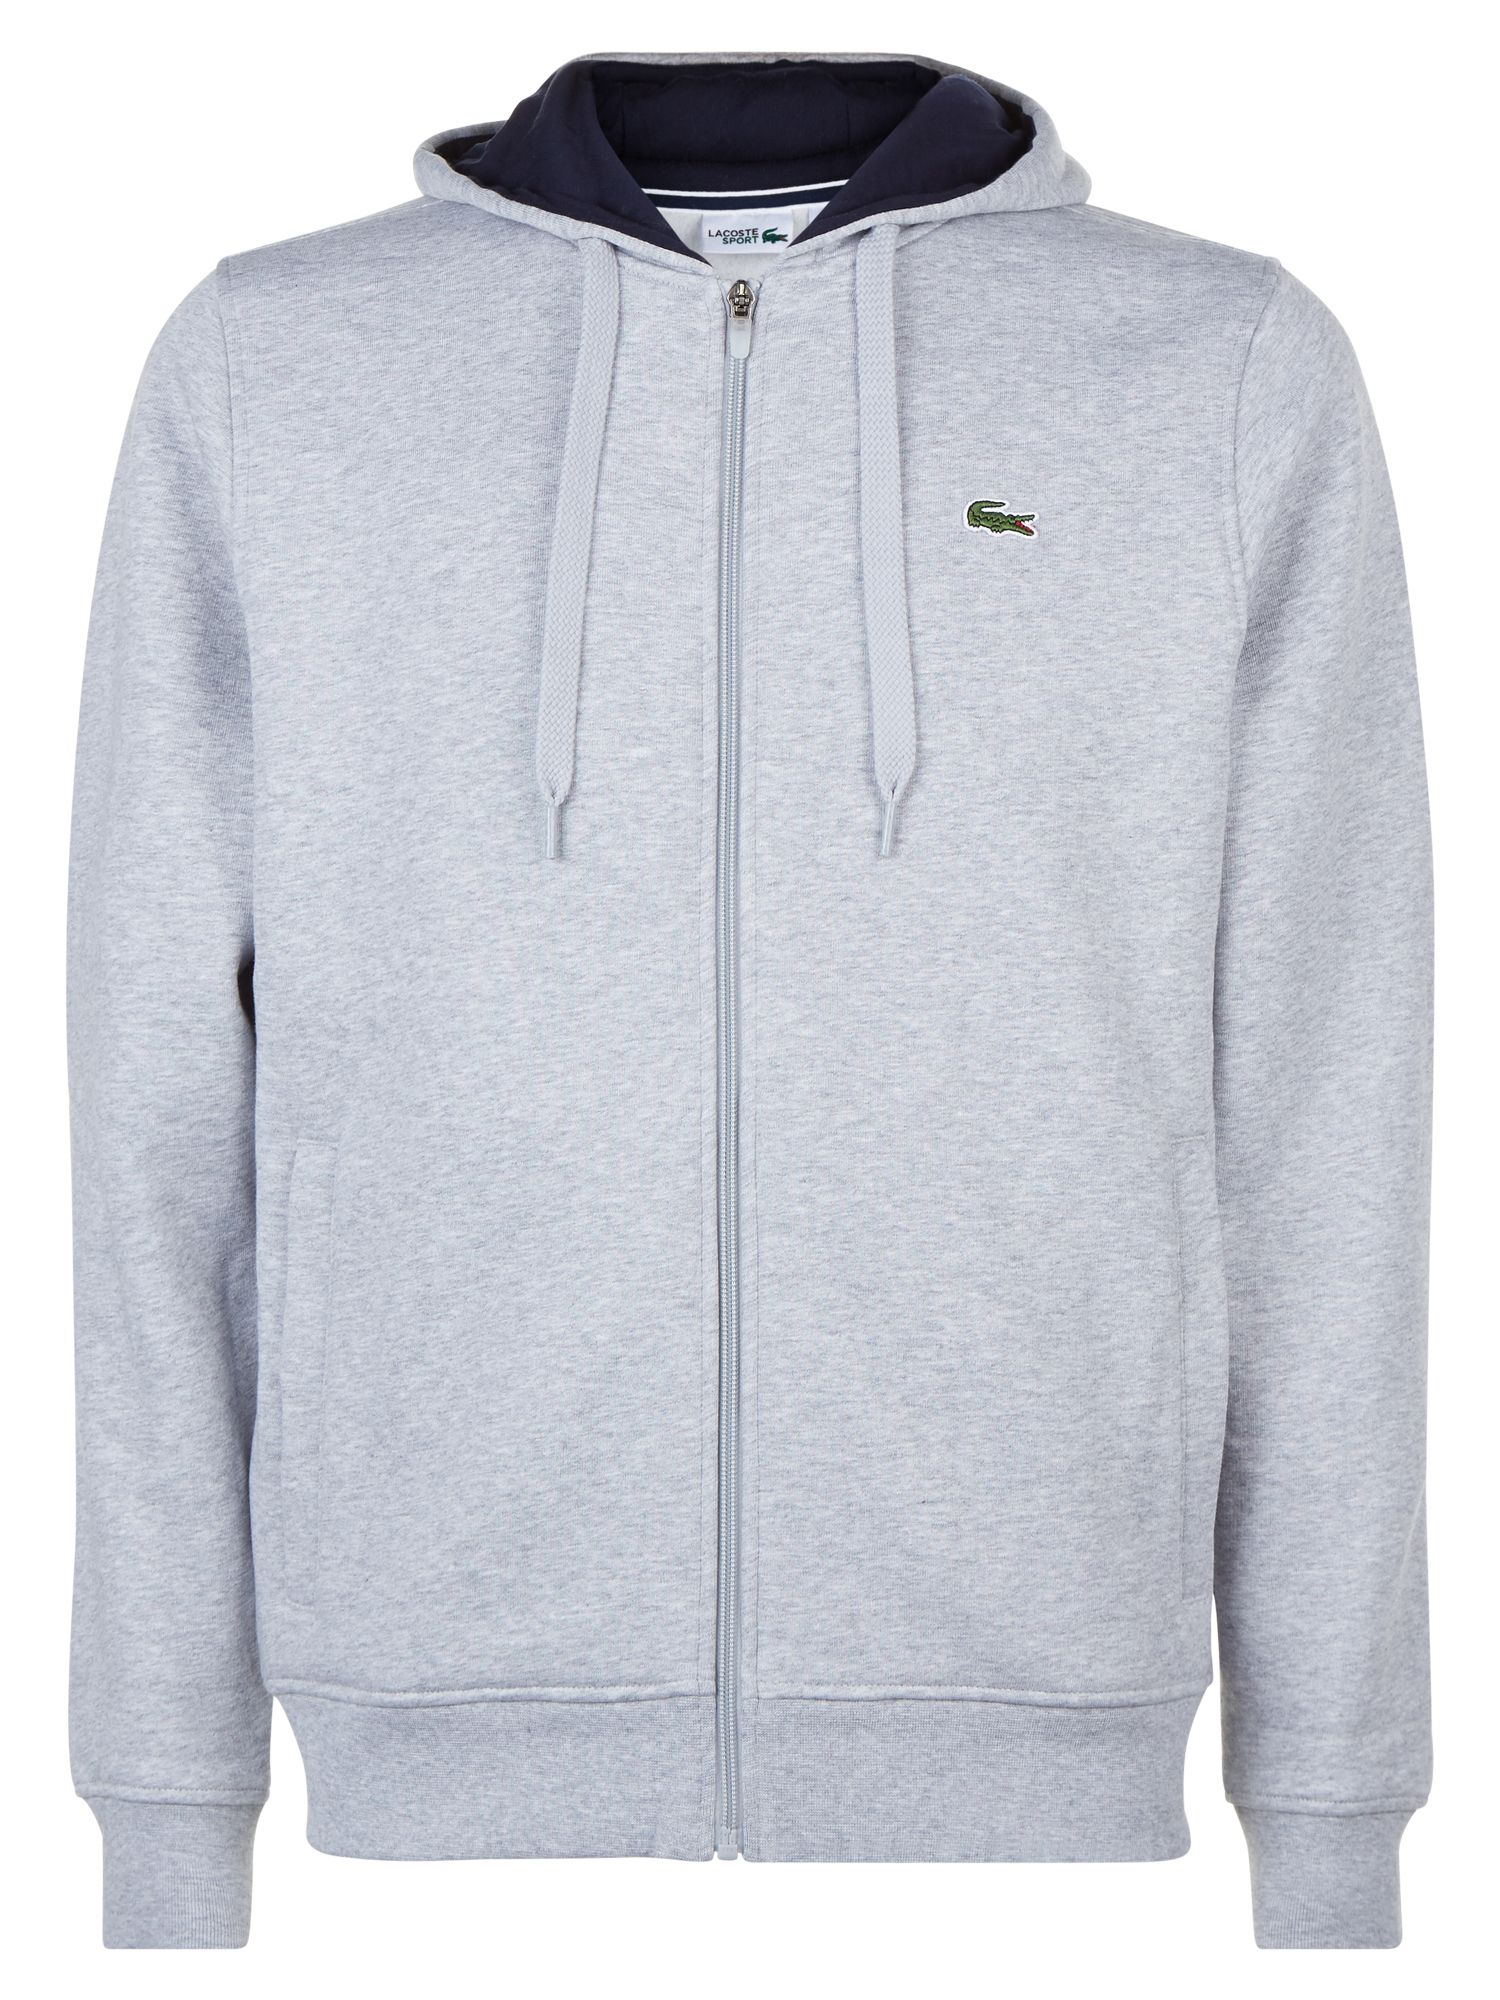 Men's Lacoste Lacoste Hooded Fleece Sweatshirt, Urban Grey